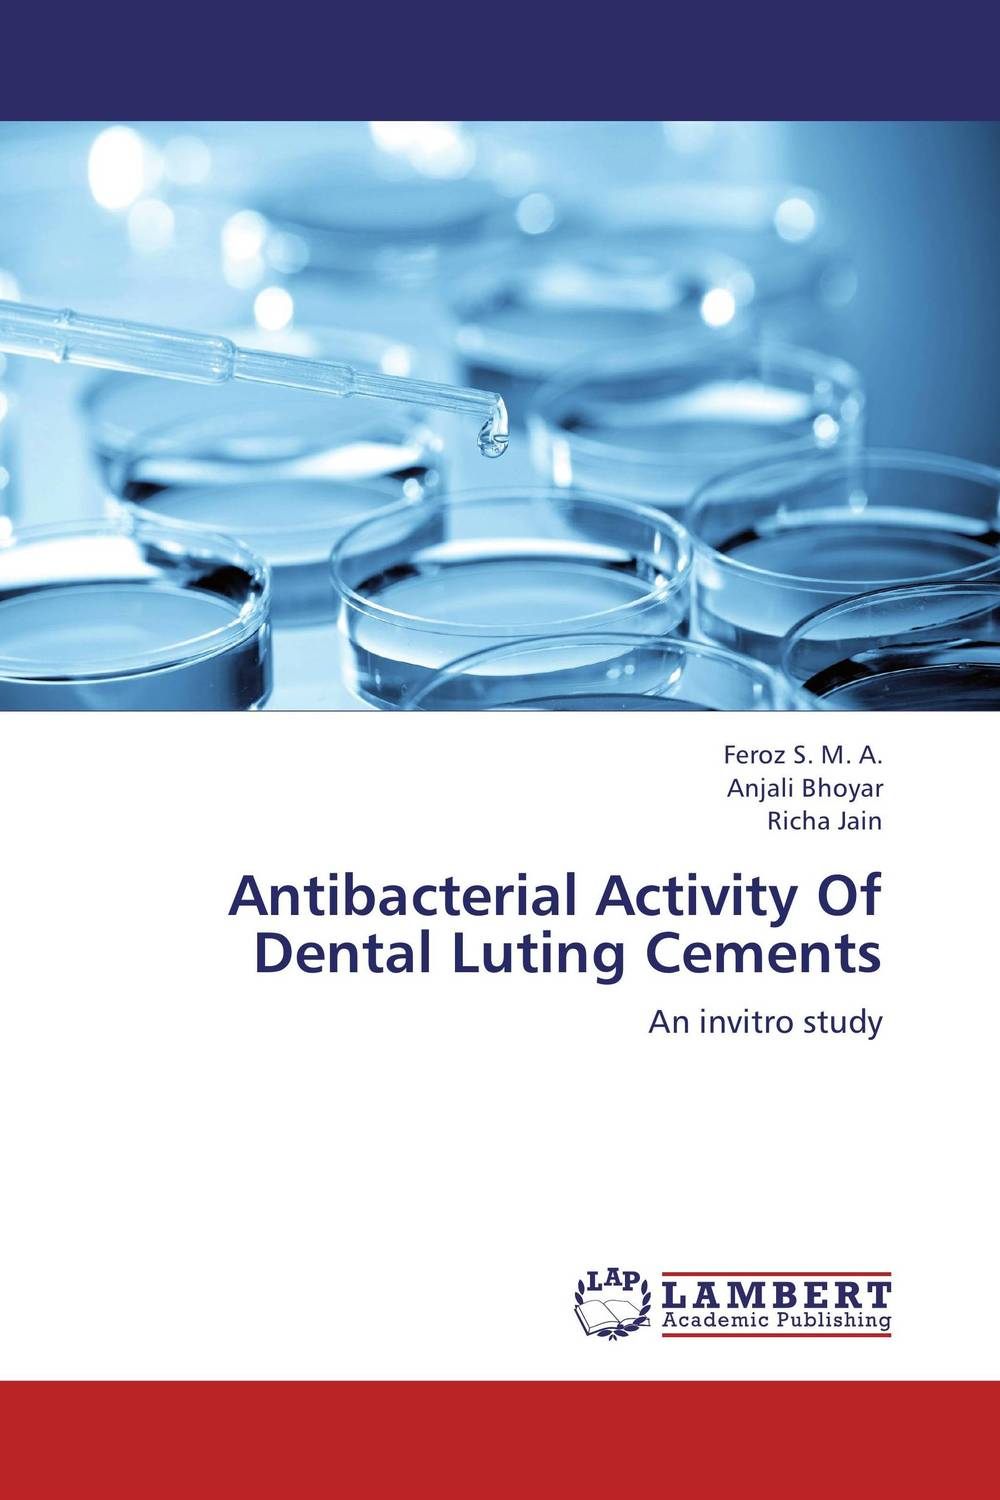 Antibacterial Activity Of  Dental Luting Cements simranjeet kaur amaninder singh and pranav gupta surface properties of dental materials under simulated tooth wear